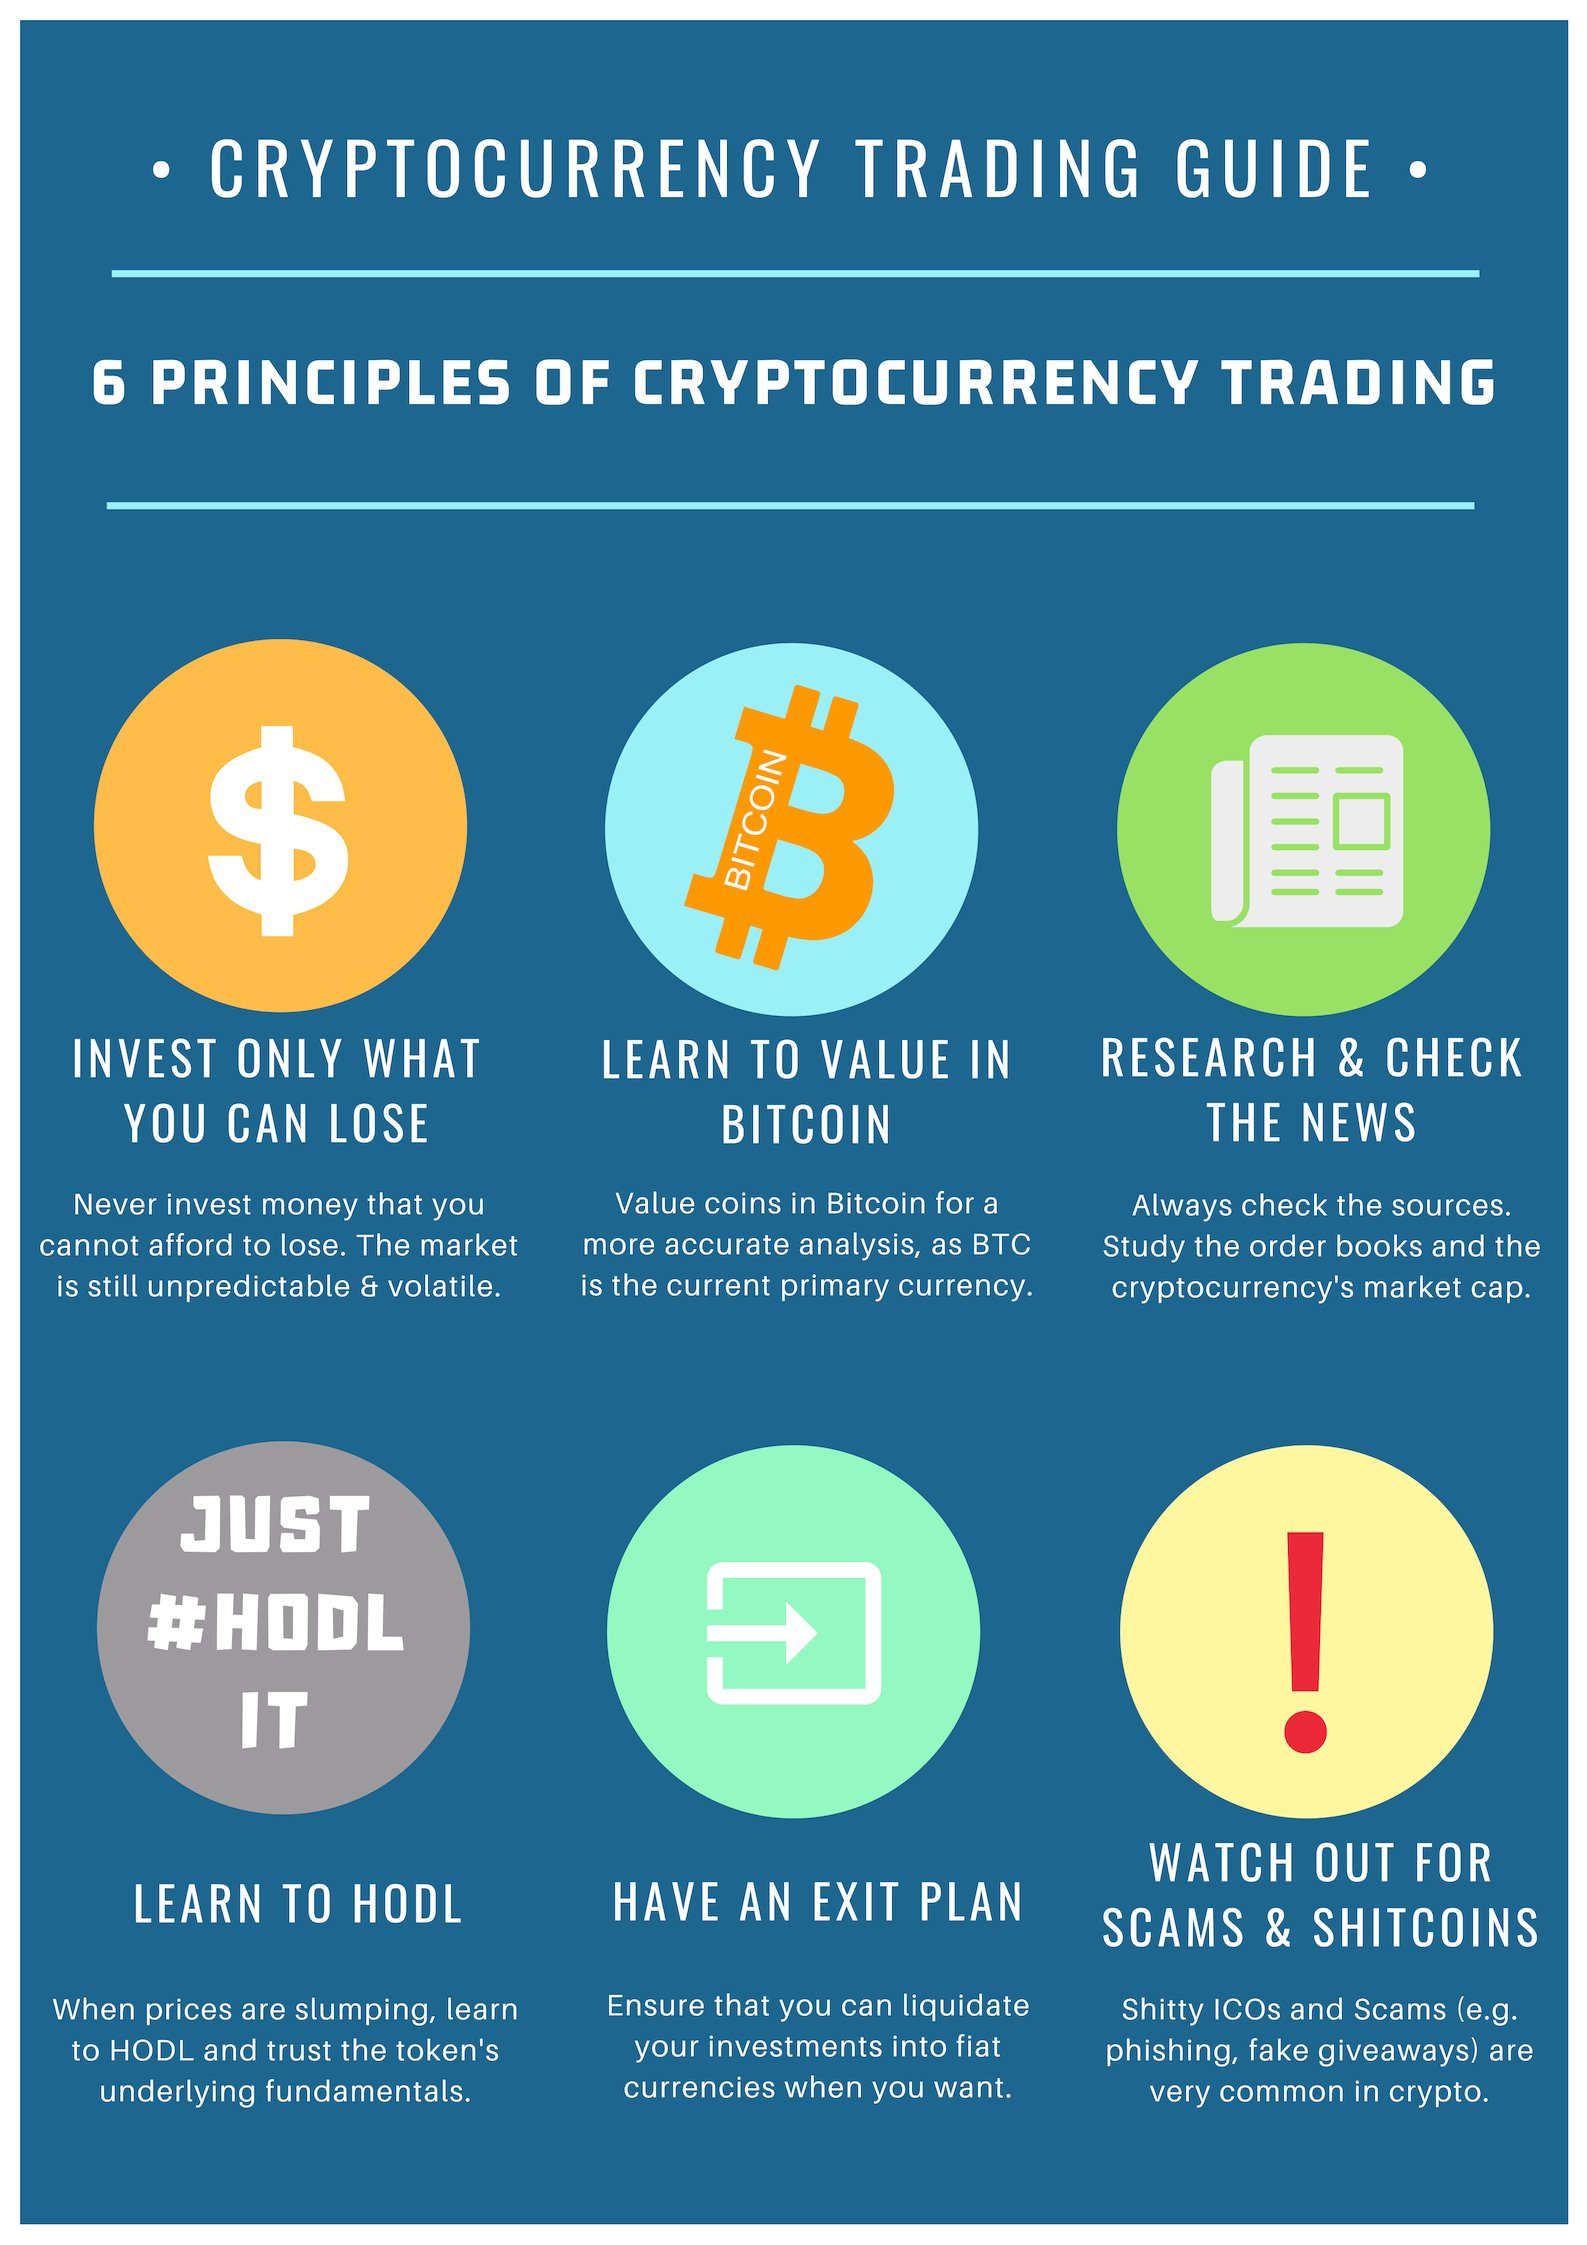 Trading-Guide-3---6-principles-trading-cryptocurrency-1